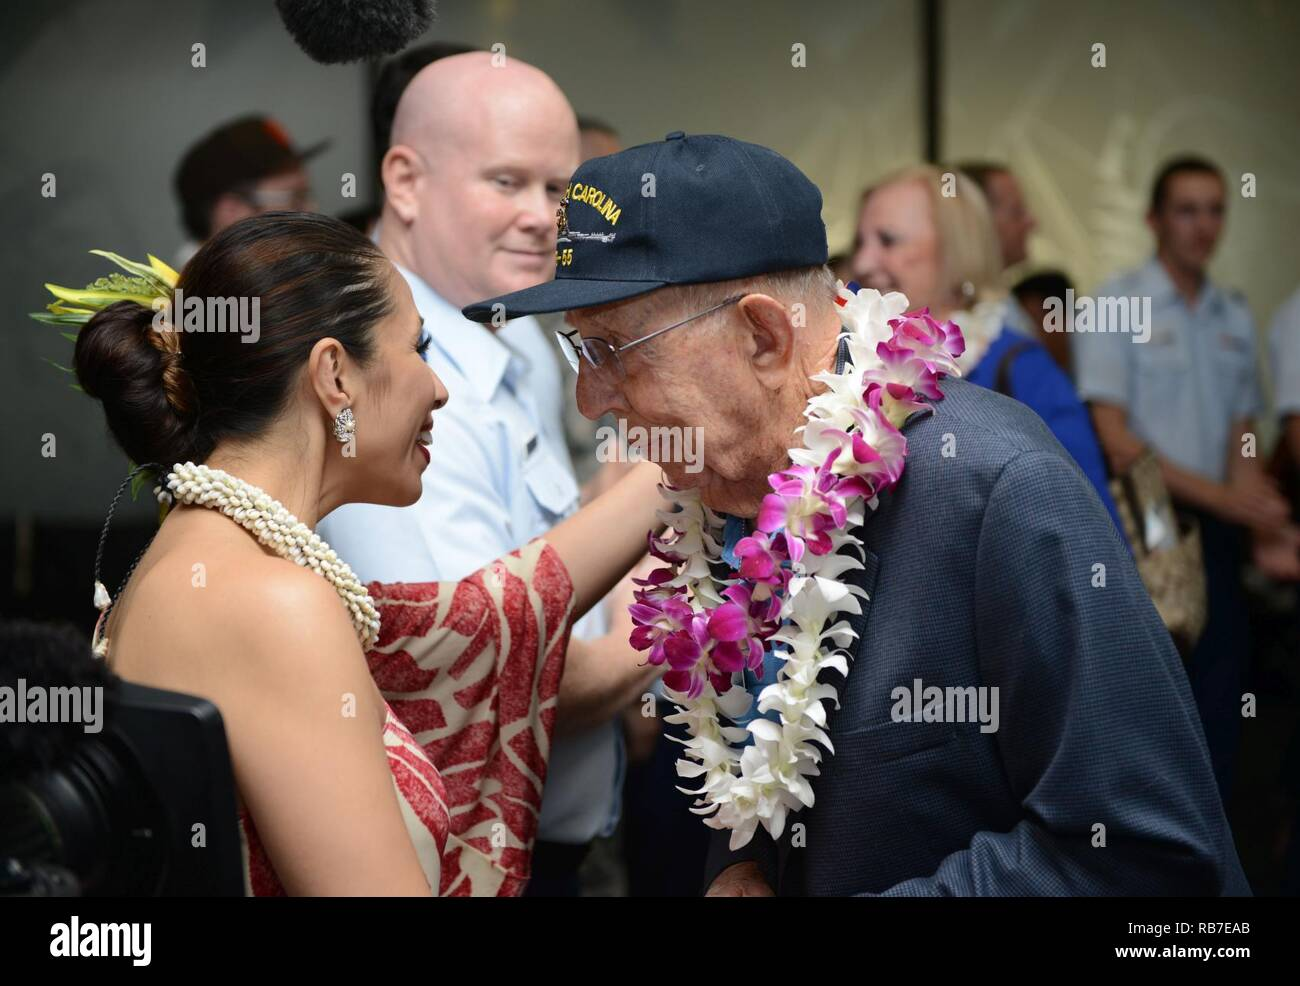 a world war ii veteran shakes hands with personnel and military